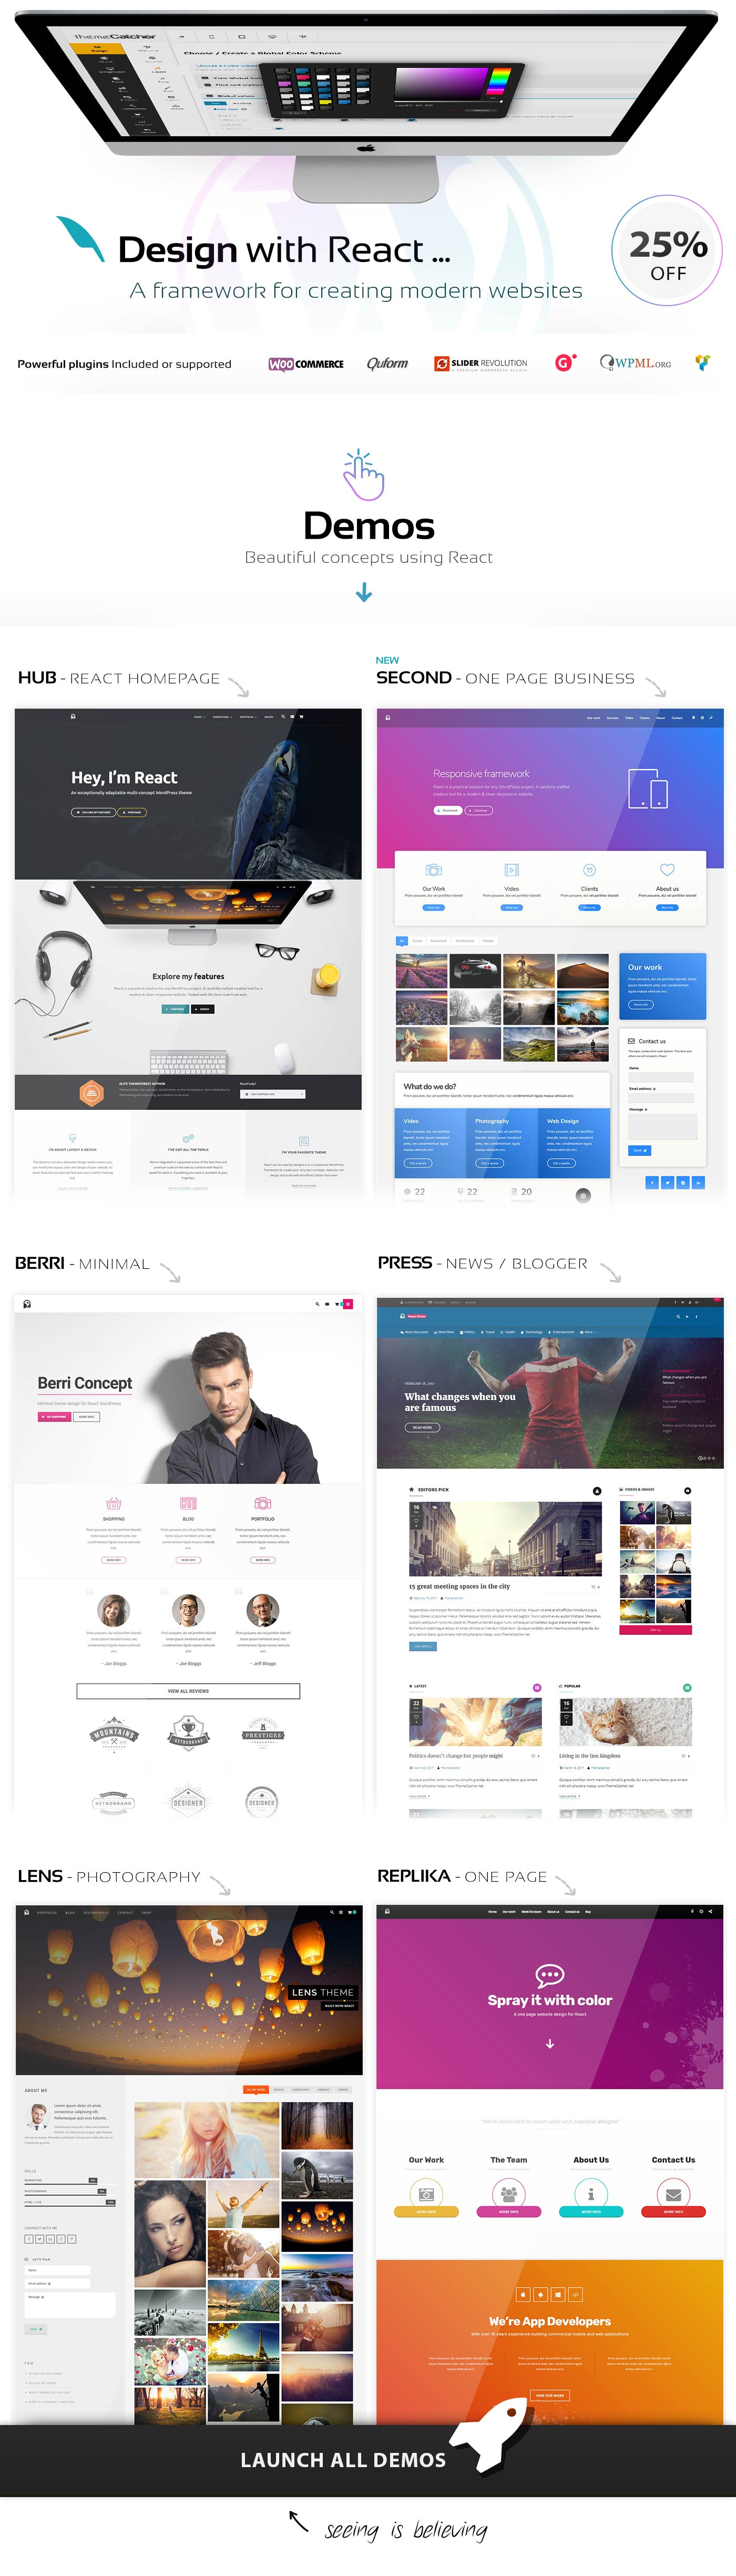 React - WordPress theme